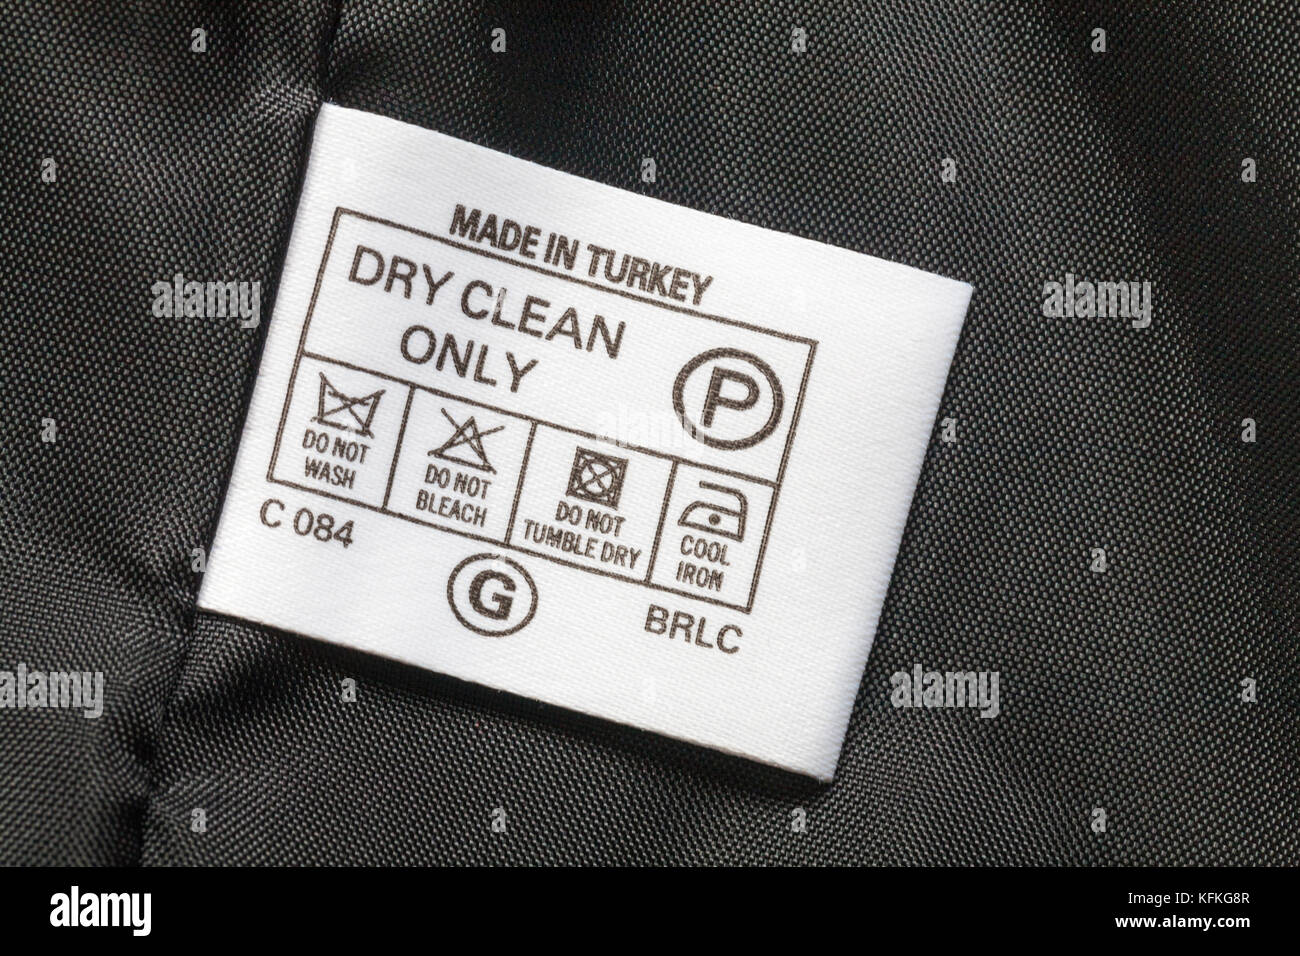 Washing Care Symbols Dry Clean Only Label In Womans Jacket Made In